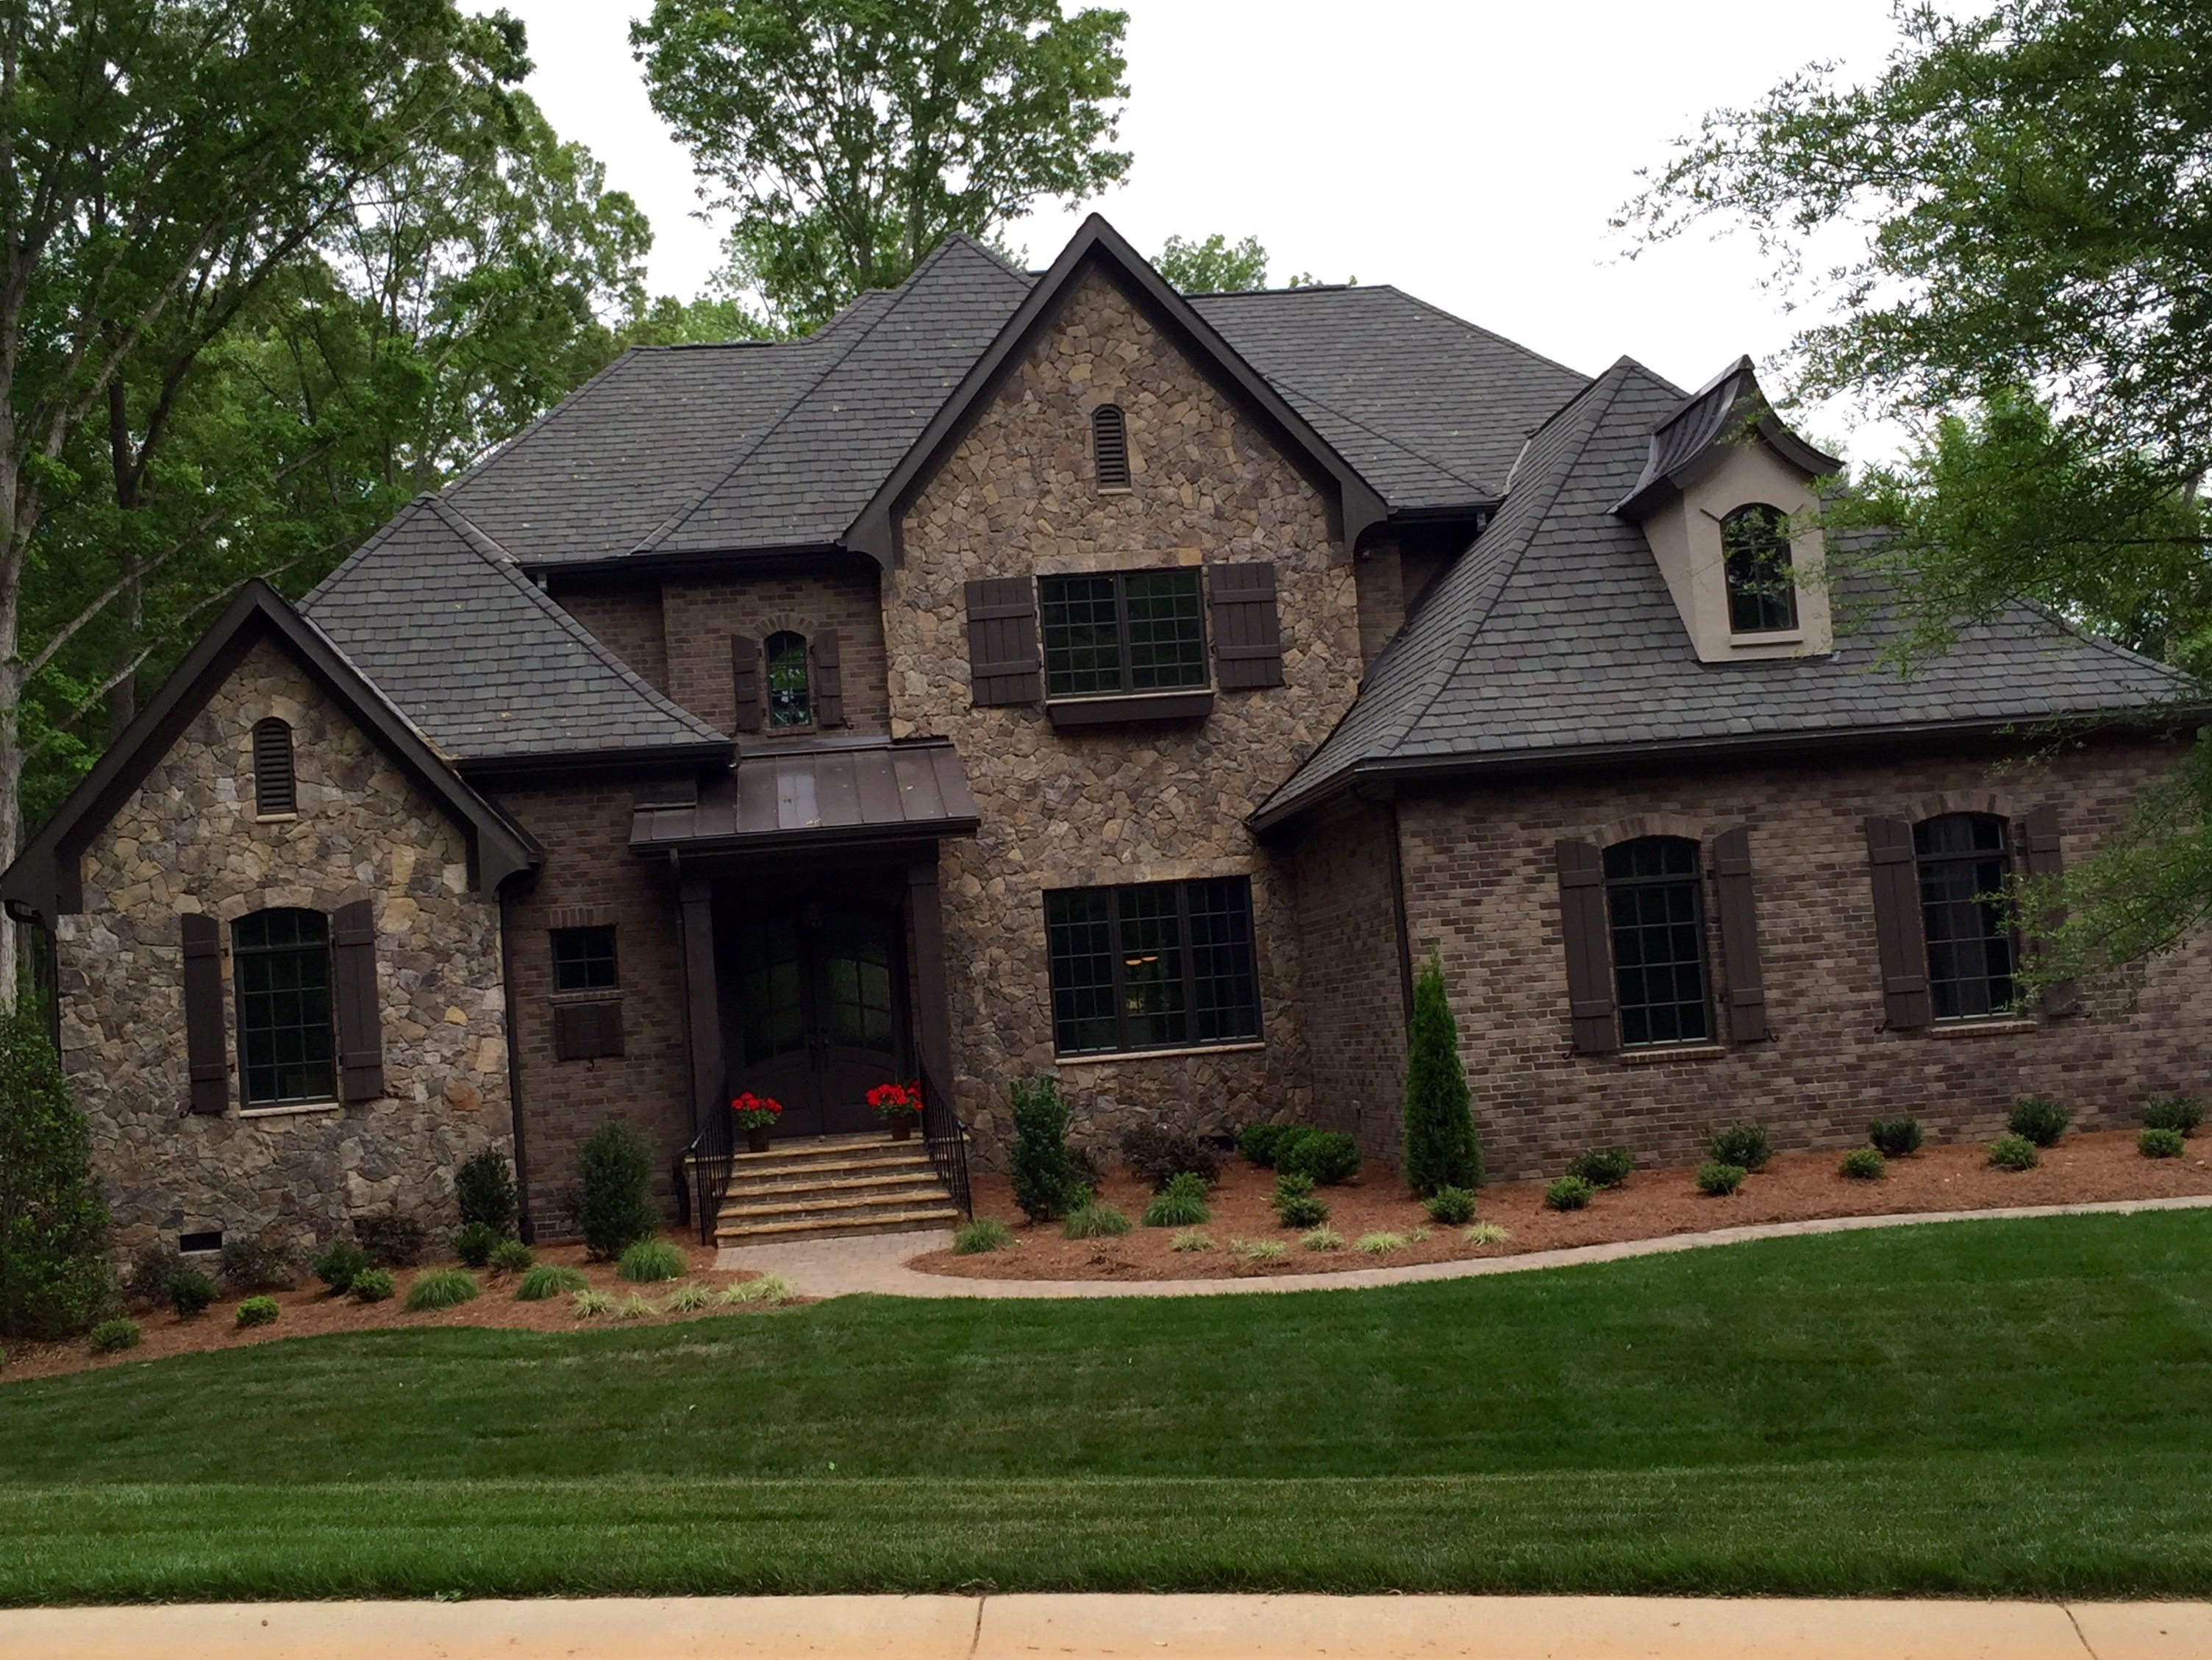 Arh asheville 1131f plan exterior 40 stone oakridge Black brick homes